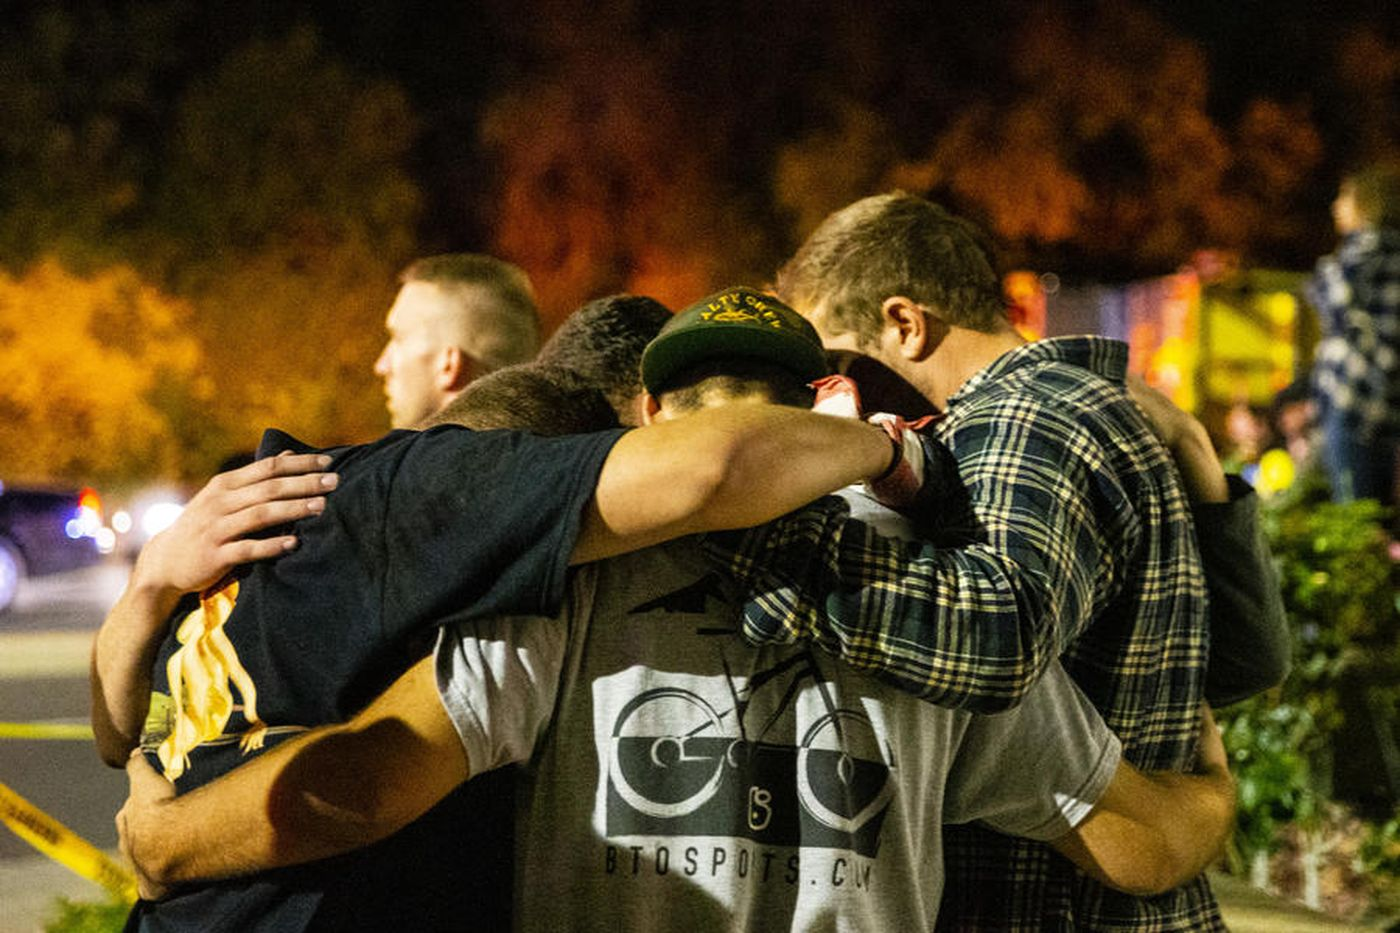 People huddle together in a parking lot along South Moorpark Road on Nov. 8, 2018, in the aftermath of a mass shooting at Borderline Bar & Grill. (Credit: Kent Nishimura / Los Angeles Times)